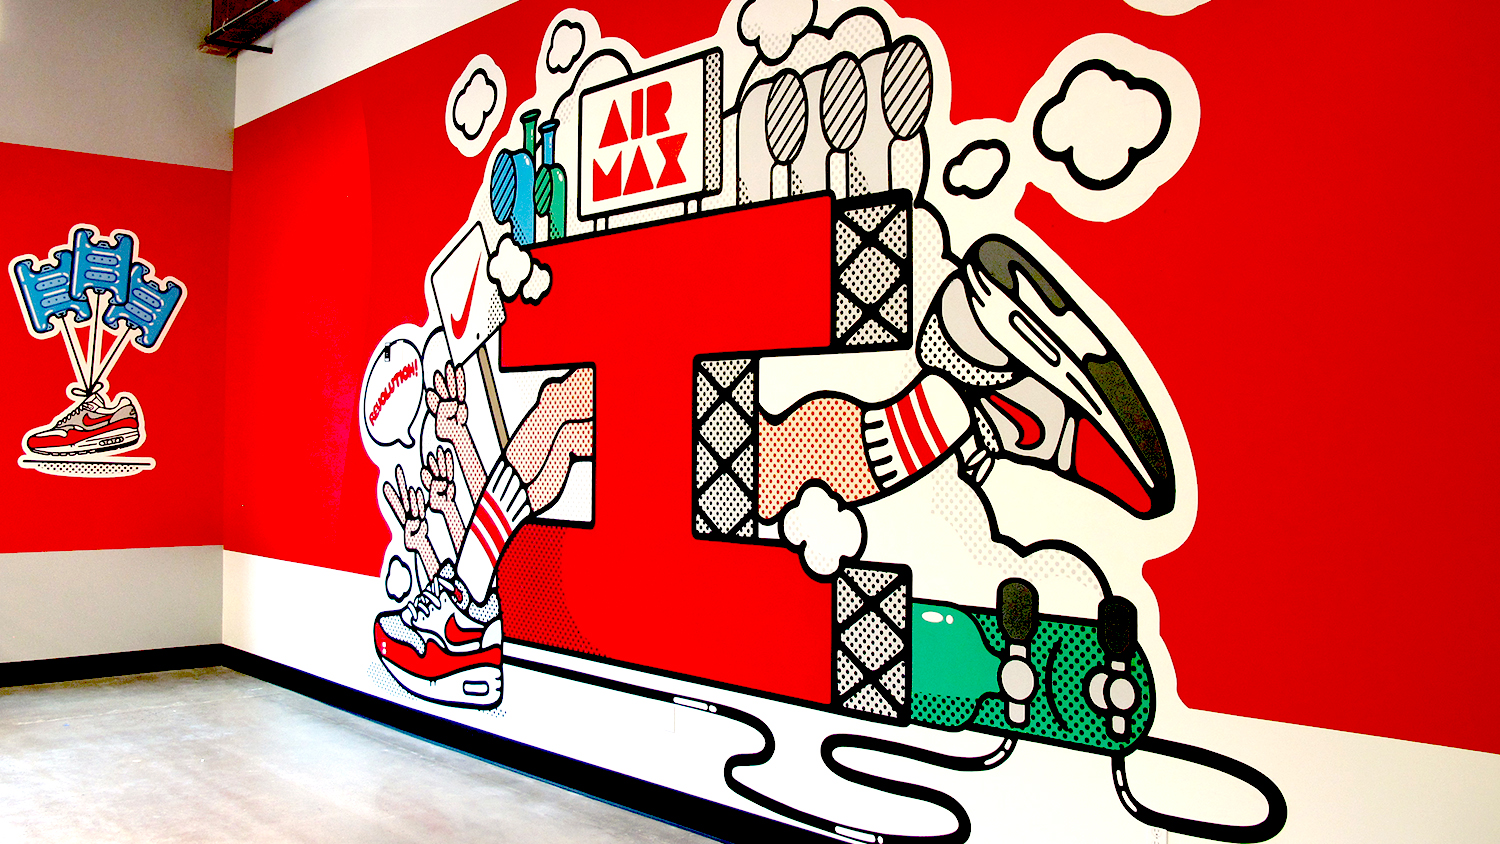 AUGUST 10, 2015 NIKE AIR MX MURALS FEATURED IMAGE